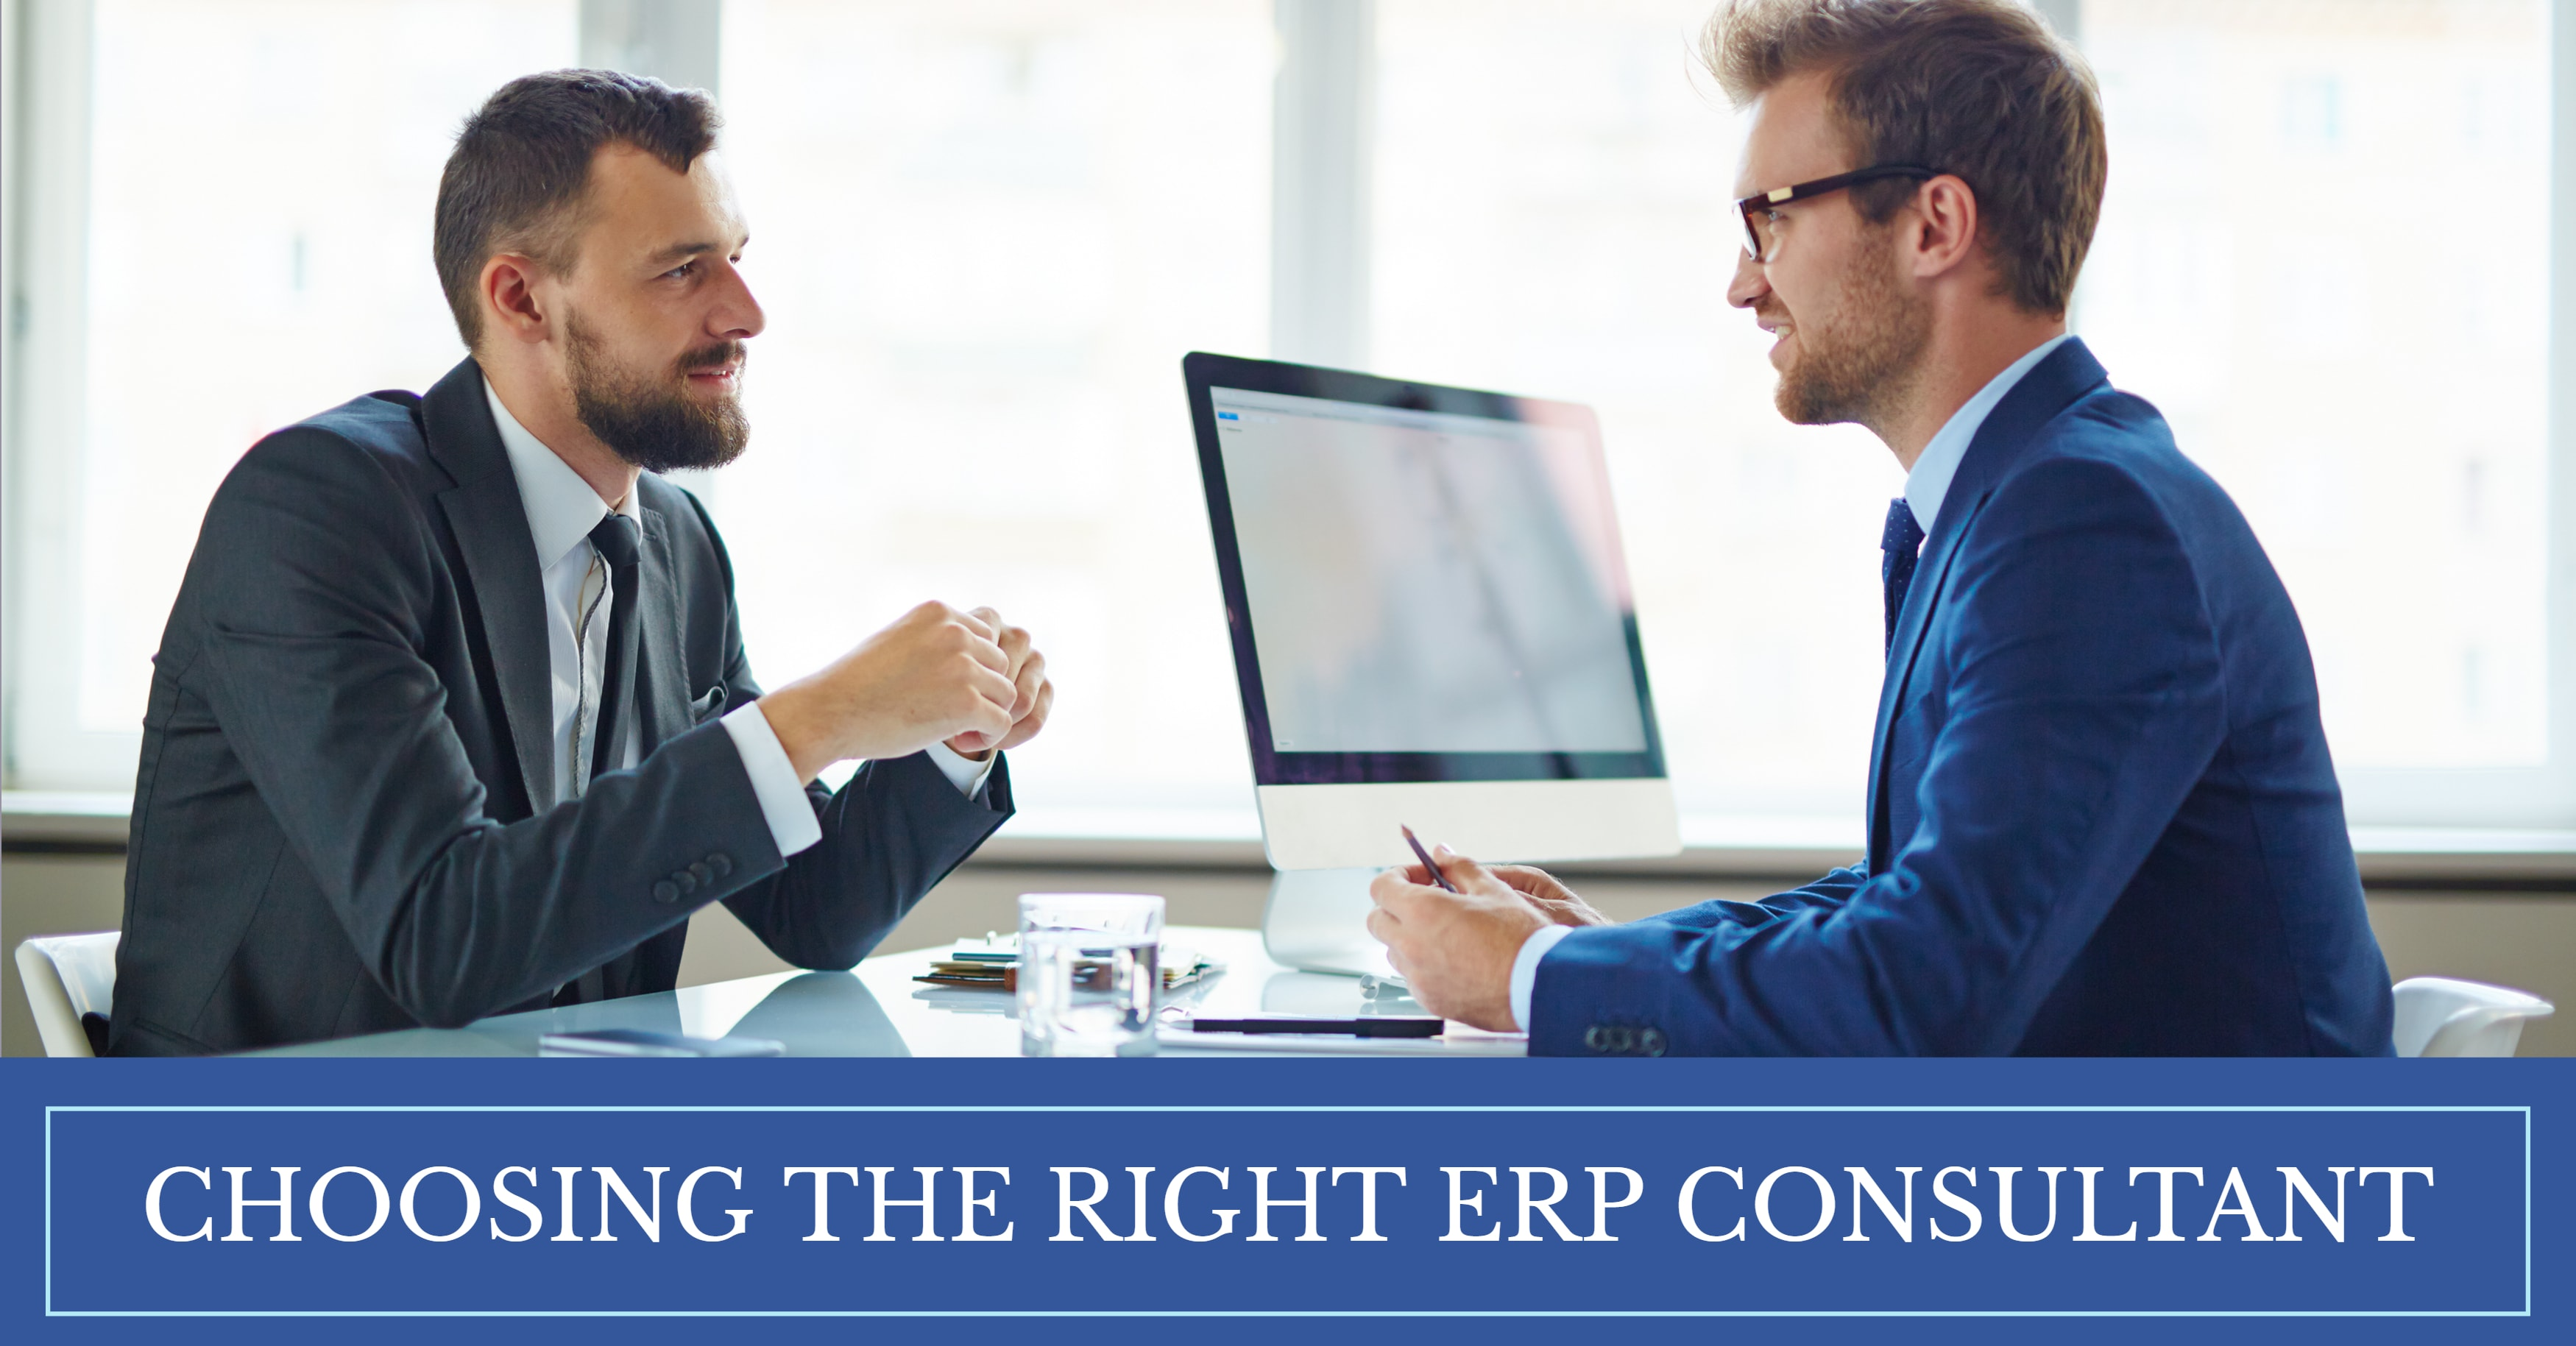 5 Criteria for Choosing the Right ERP Consultant